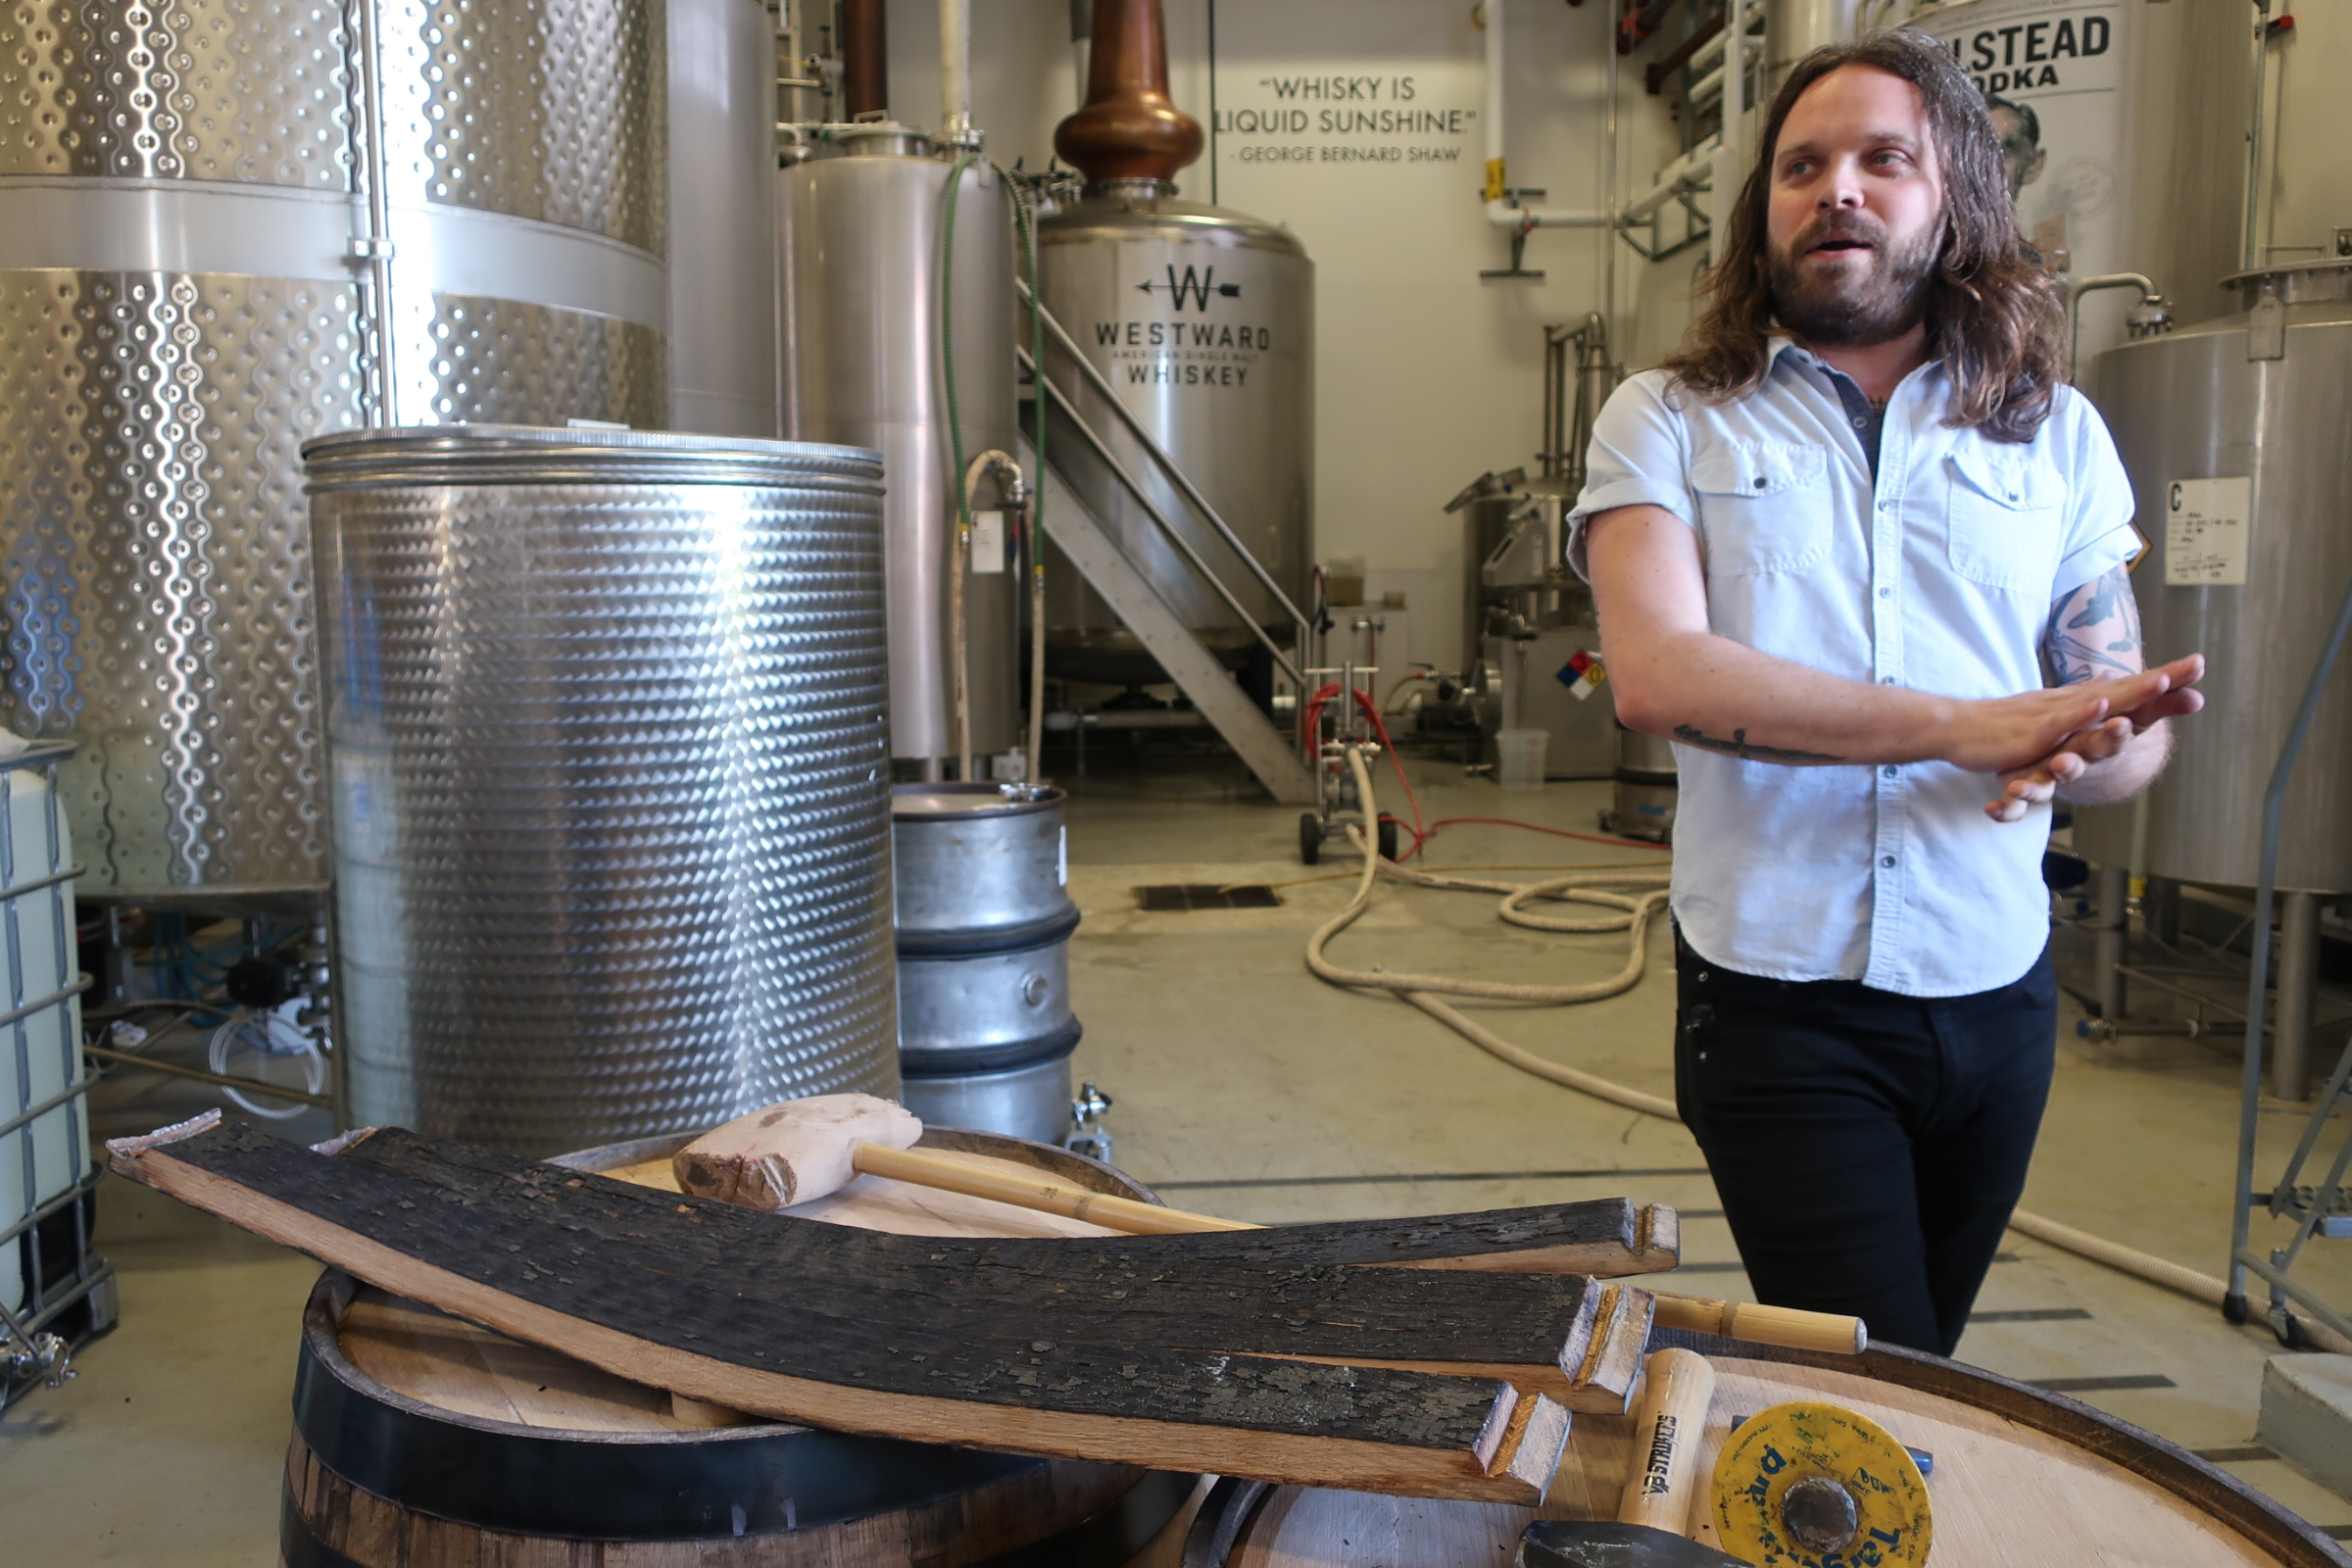 Miles Munroe discusses the differences in char when it comes to whiskey at Westward Whiskey.